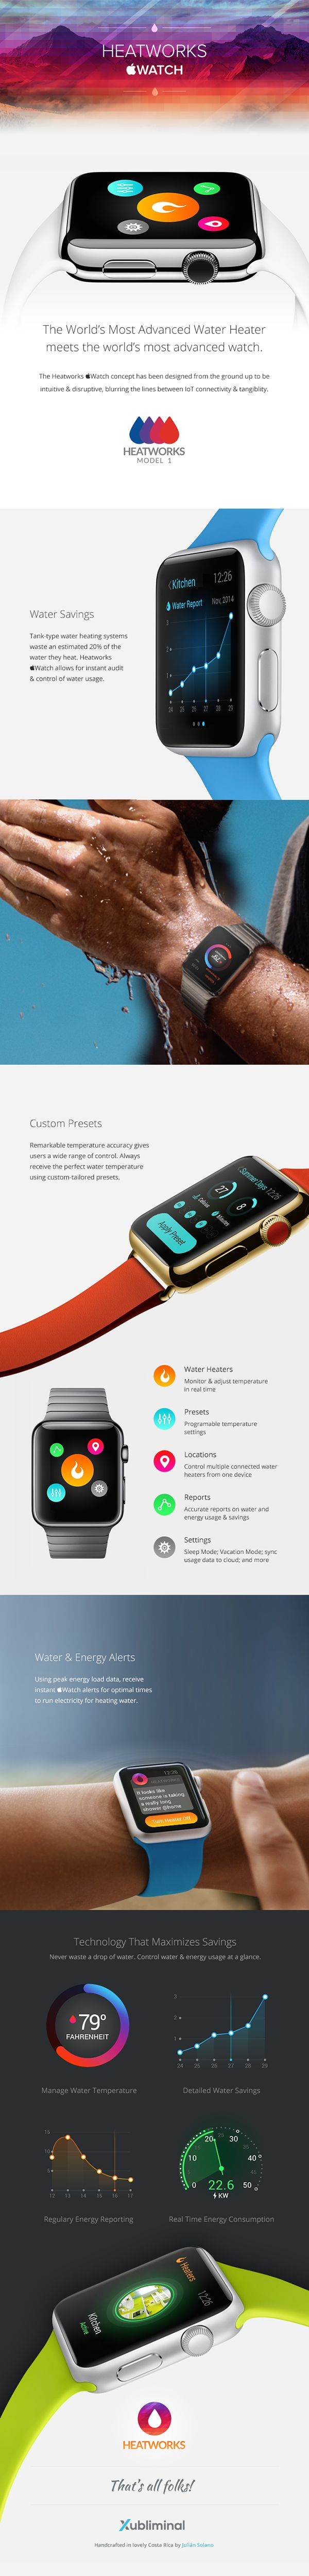 Heatworks Apple Watch App on Behance